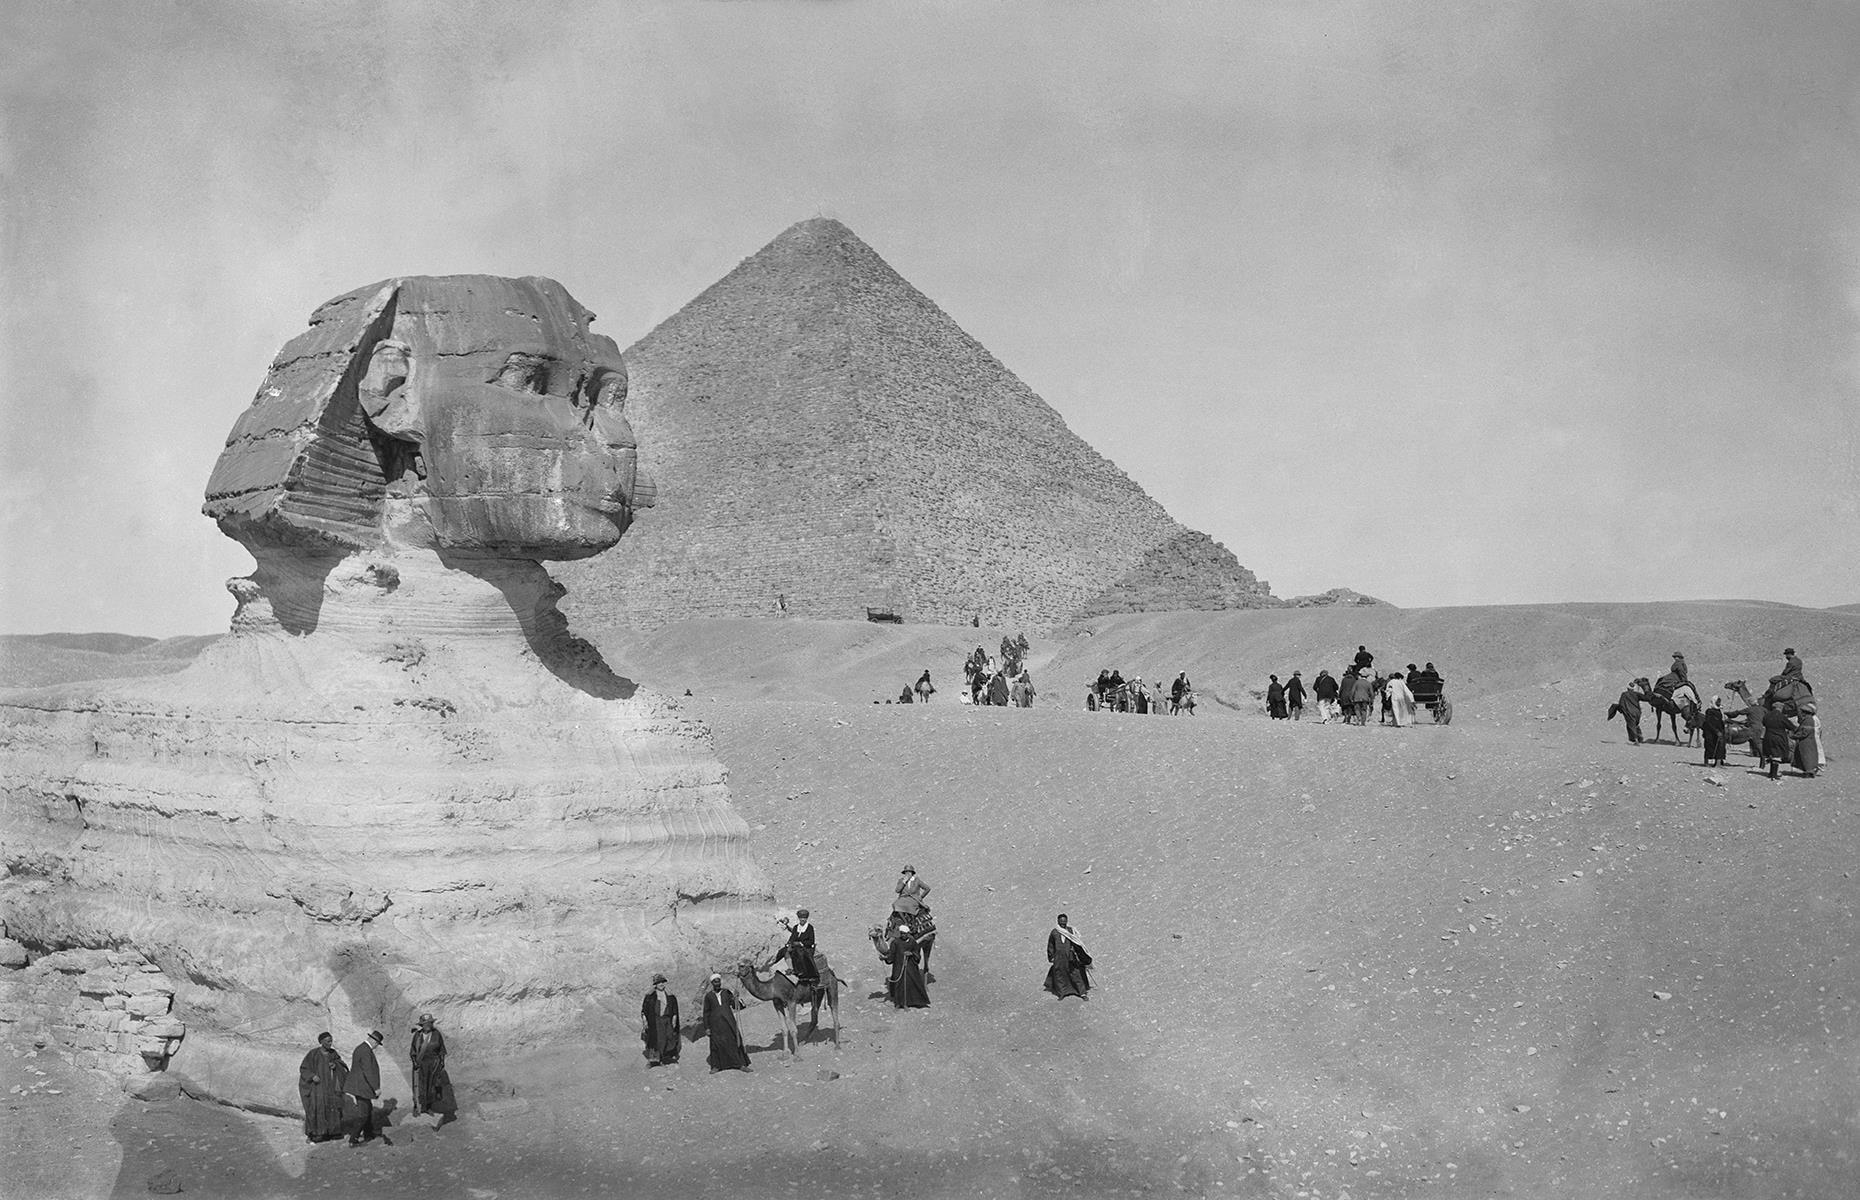 Slide 20 of 35: Beyond their decks and lavish lounges, cruises gave wealthy passengers the opportunity to explore far-flung destinations on organized excursions. Here American tourists from the Cunard liner Scythia are pictured wandering the ancient Giza pyramid complex, near Cairo, Egypt in 1923.